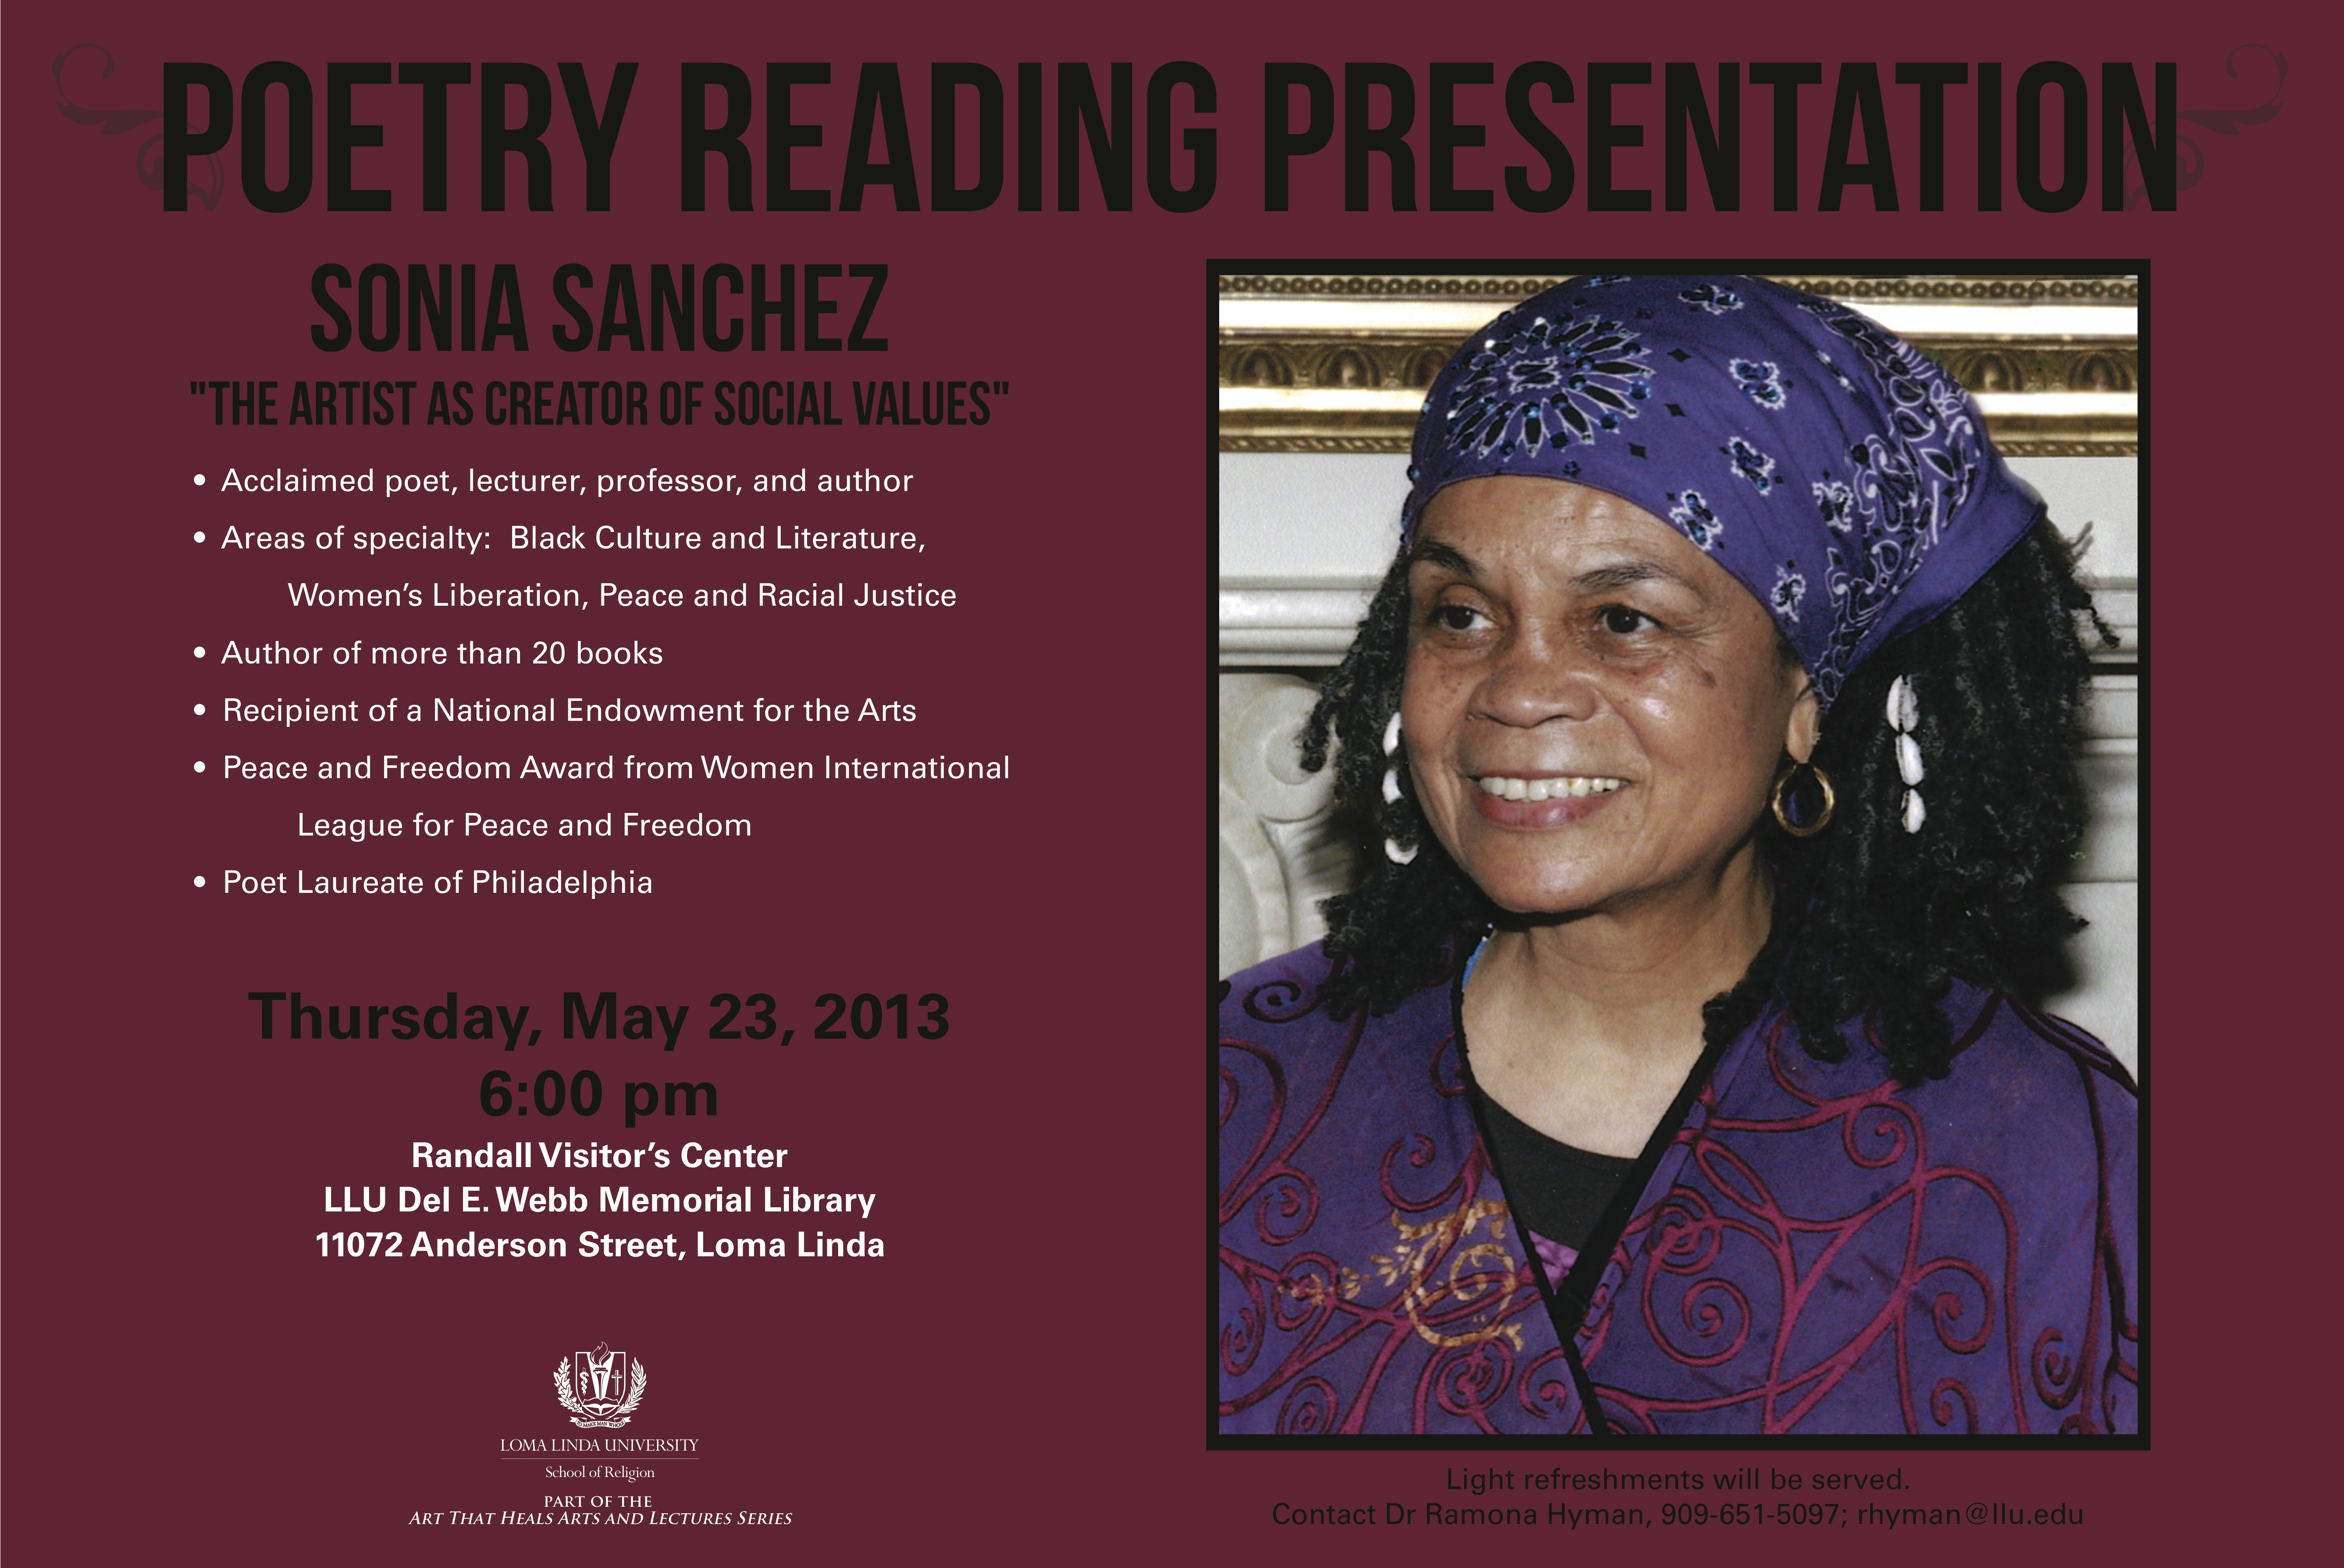 sonia sanchez essay Immediately download the sonia sanchez summary, chapter-by-chapter analysis, book notes, essays, quotes, character descriptions, lesson plans, and more - everything you need for studying or teaching sonia sanchez.